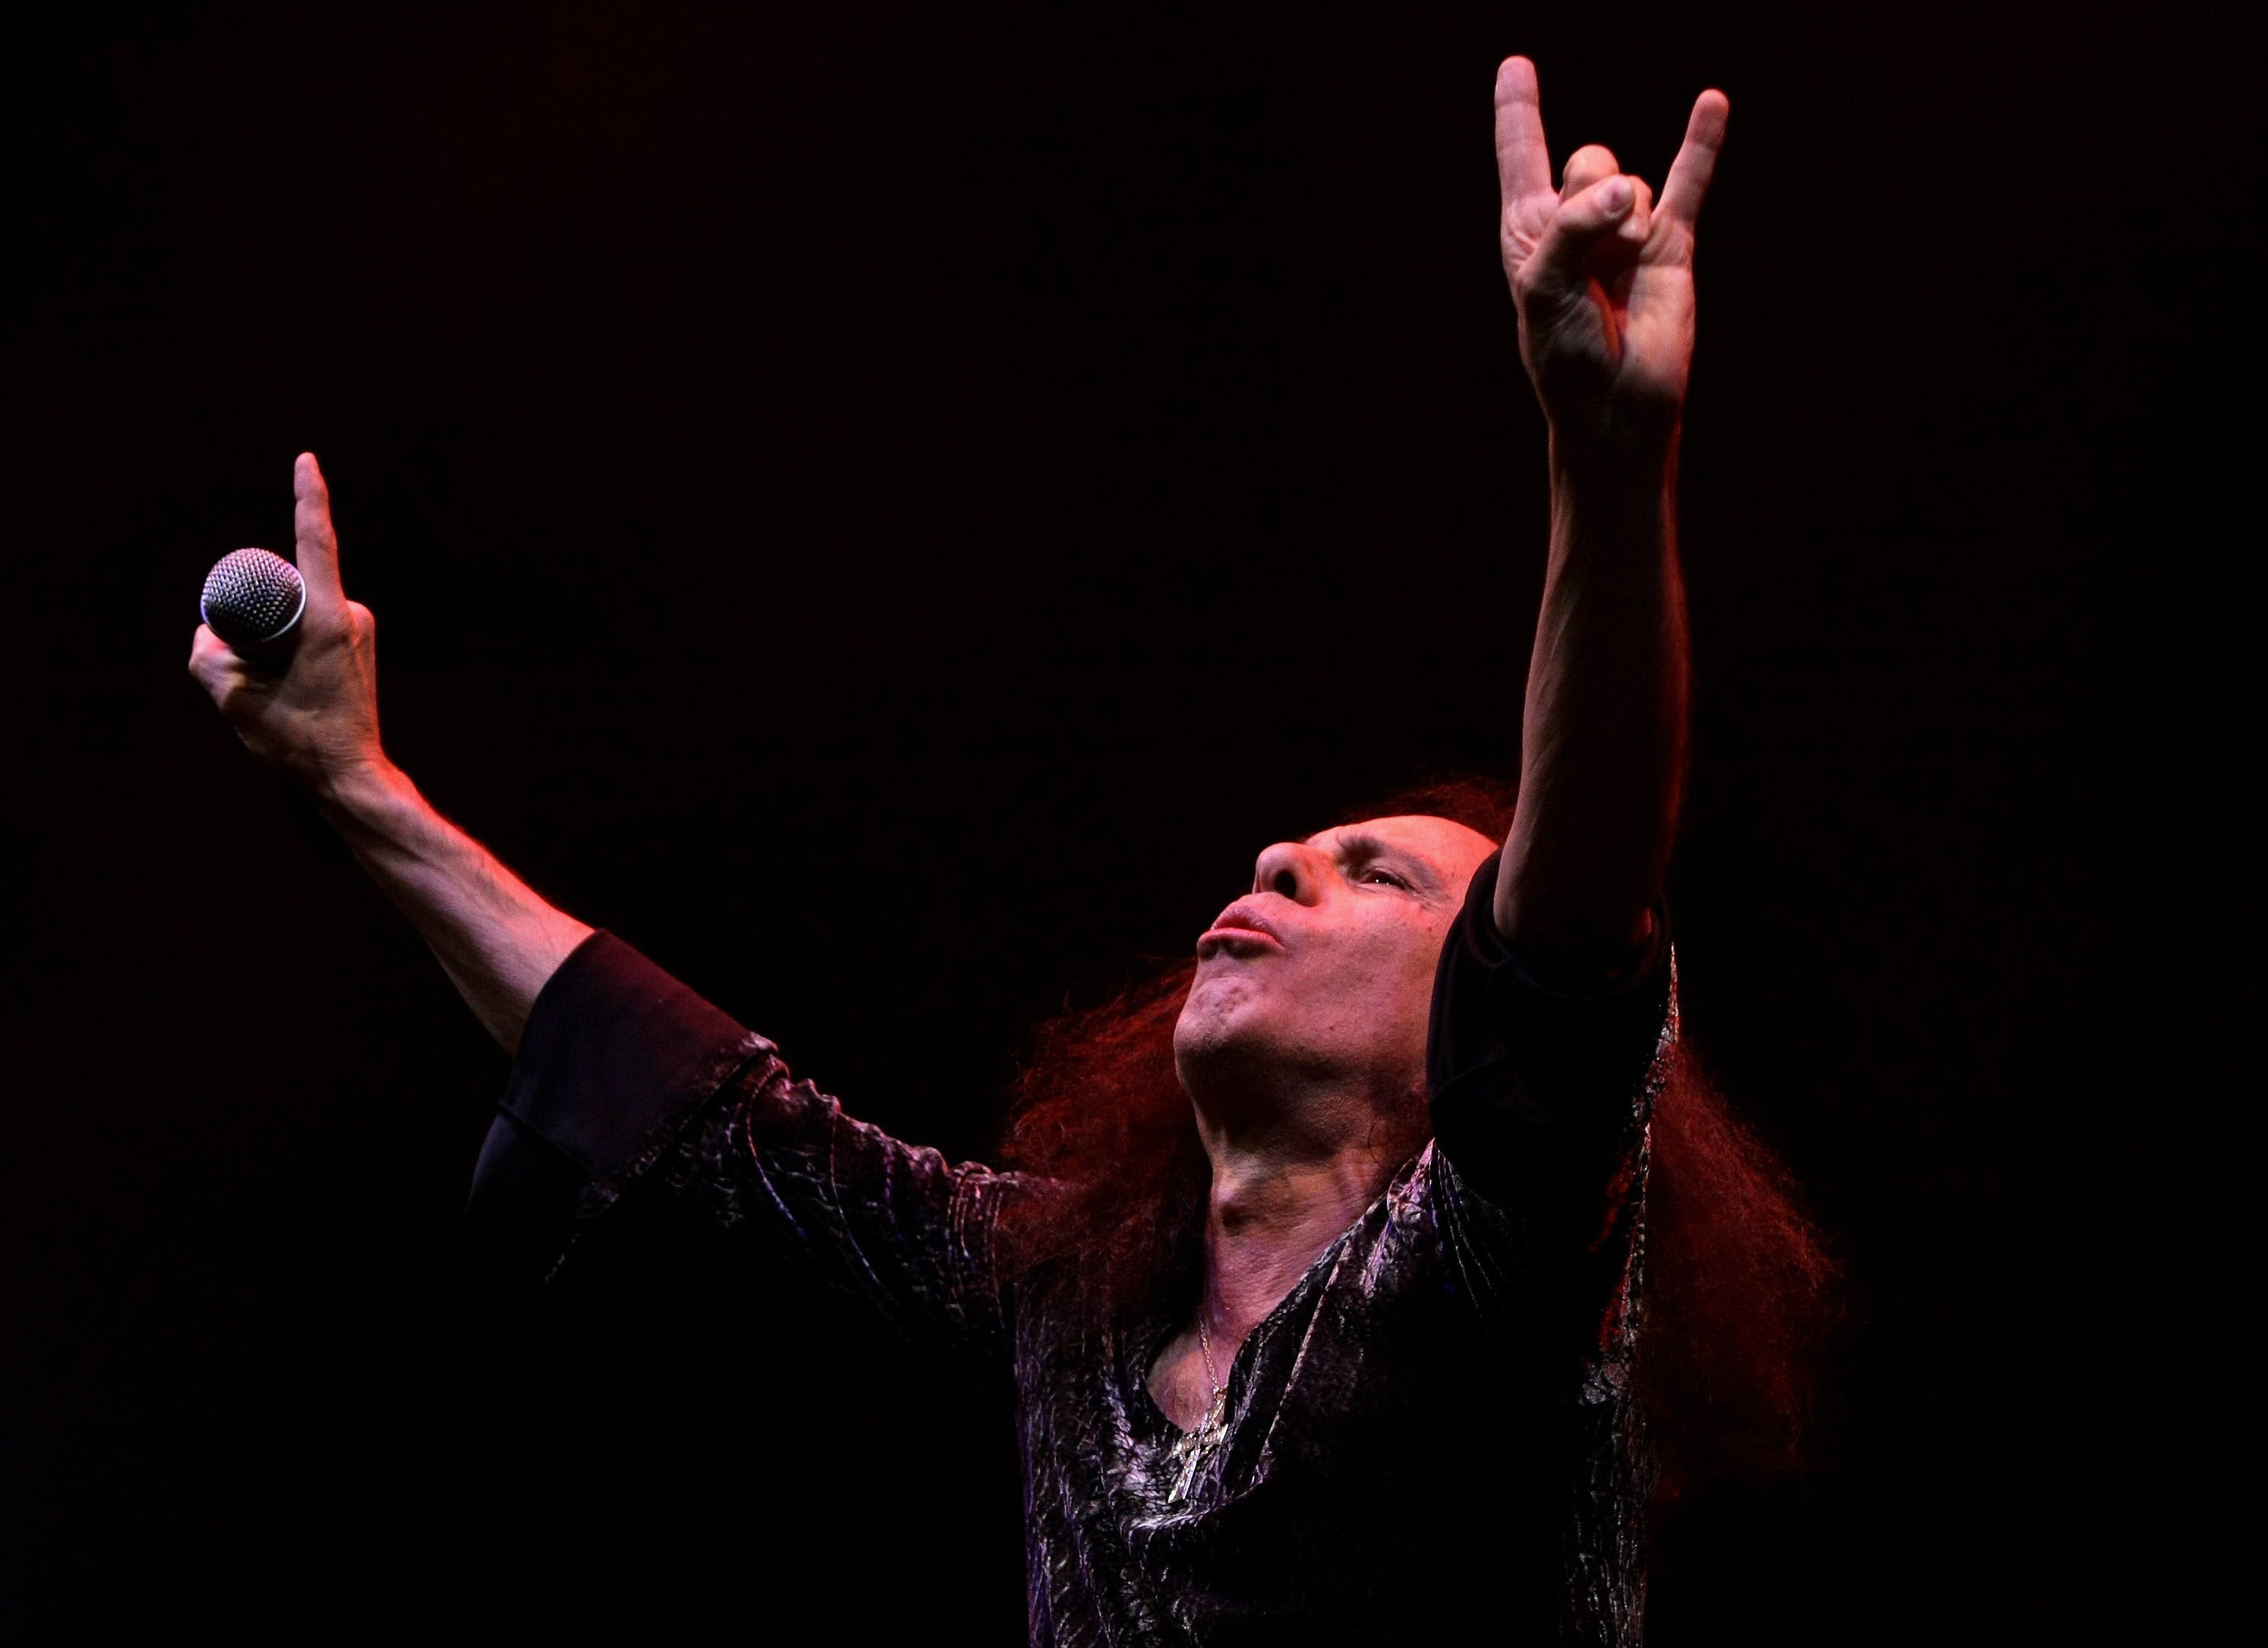 MELBOURNE, AUSTRALIA-AUGUST 10: Ronnie James Dio performs on stage with Heaven and Hell during their Heaven and Hell 2007 tour at Rod Laver Arena on August 10, 2007 in Melbourne, Australia. Heaven and Hell is a musical collaboration featuring Black Sabbath members Tony Iommi and Geezer Butler along with former members Ronnie James Dio and Vinny Appice. (Photo by Robert Cianflone/Getty Images)